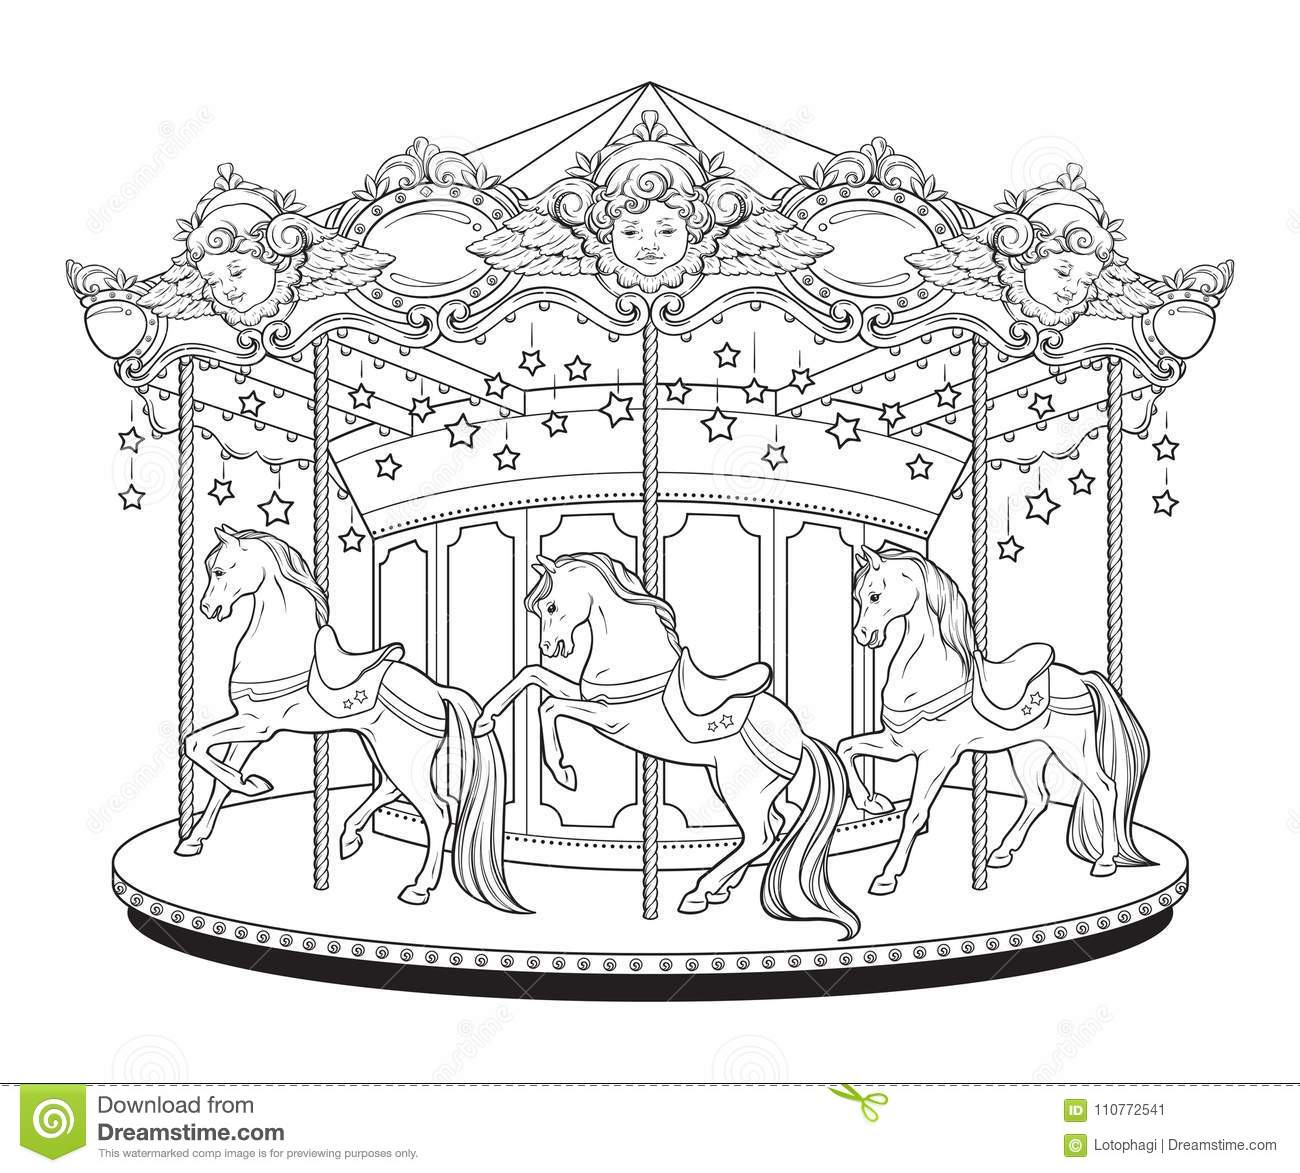 Carousel Cute Merry Go Round With Horses Coloring Book Pages For Kids And Adults Hand Drawn Vector Illustration Stock Vector Illustration Of Lights Cherubim 110772541